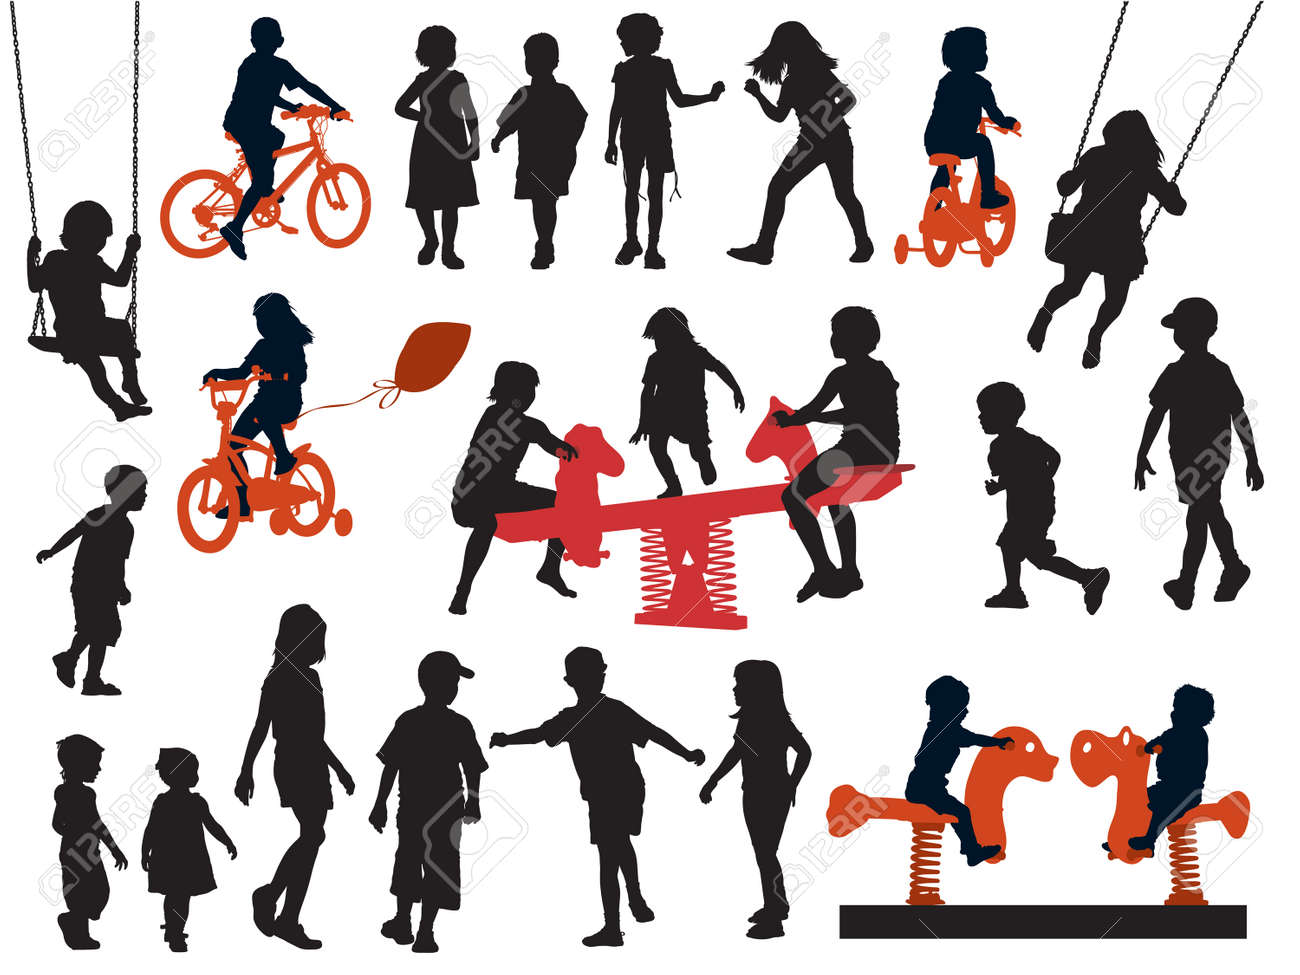 A set of silhouettes, children playing in a playground. Standard-Bild - 24933698